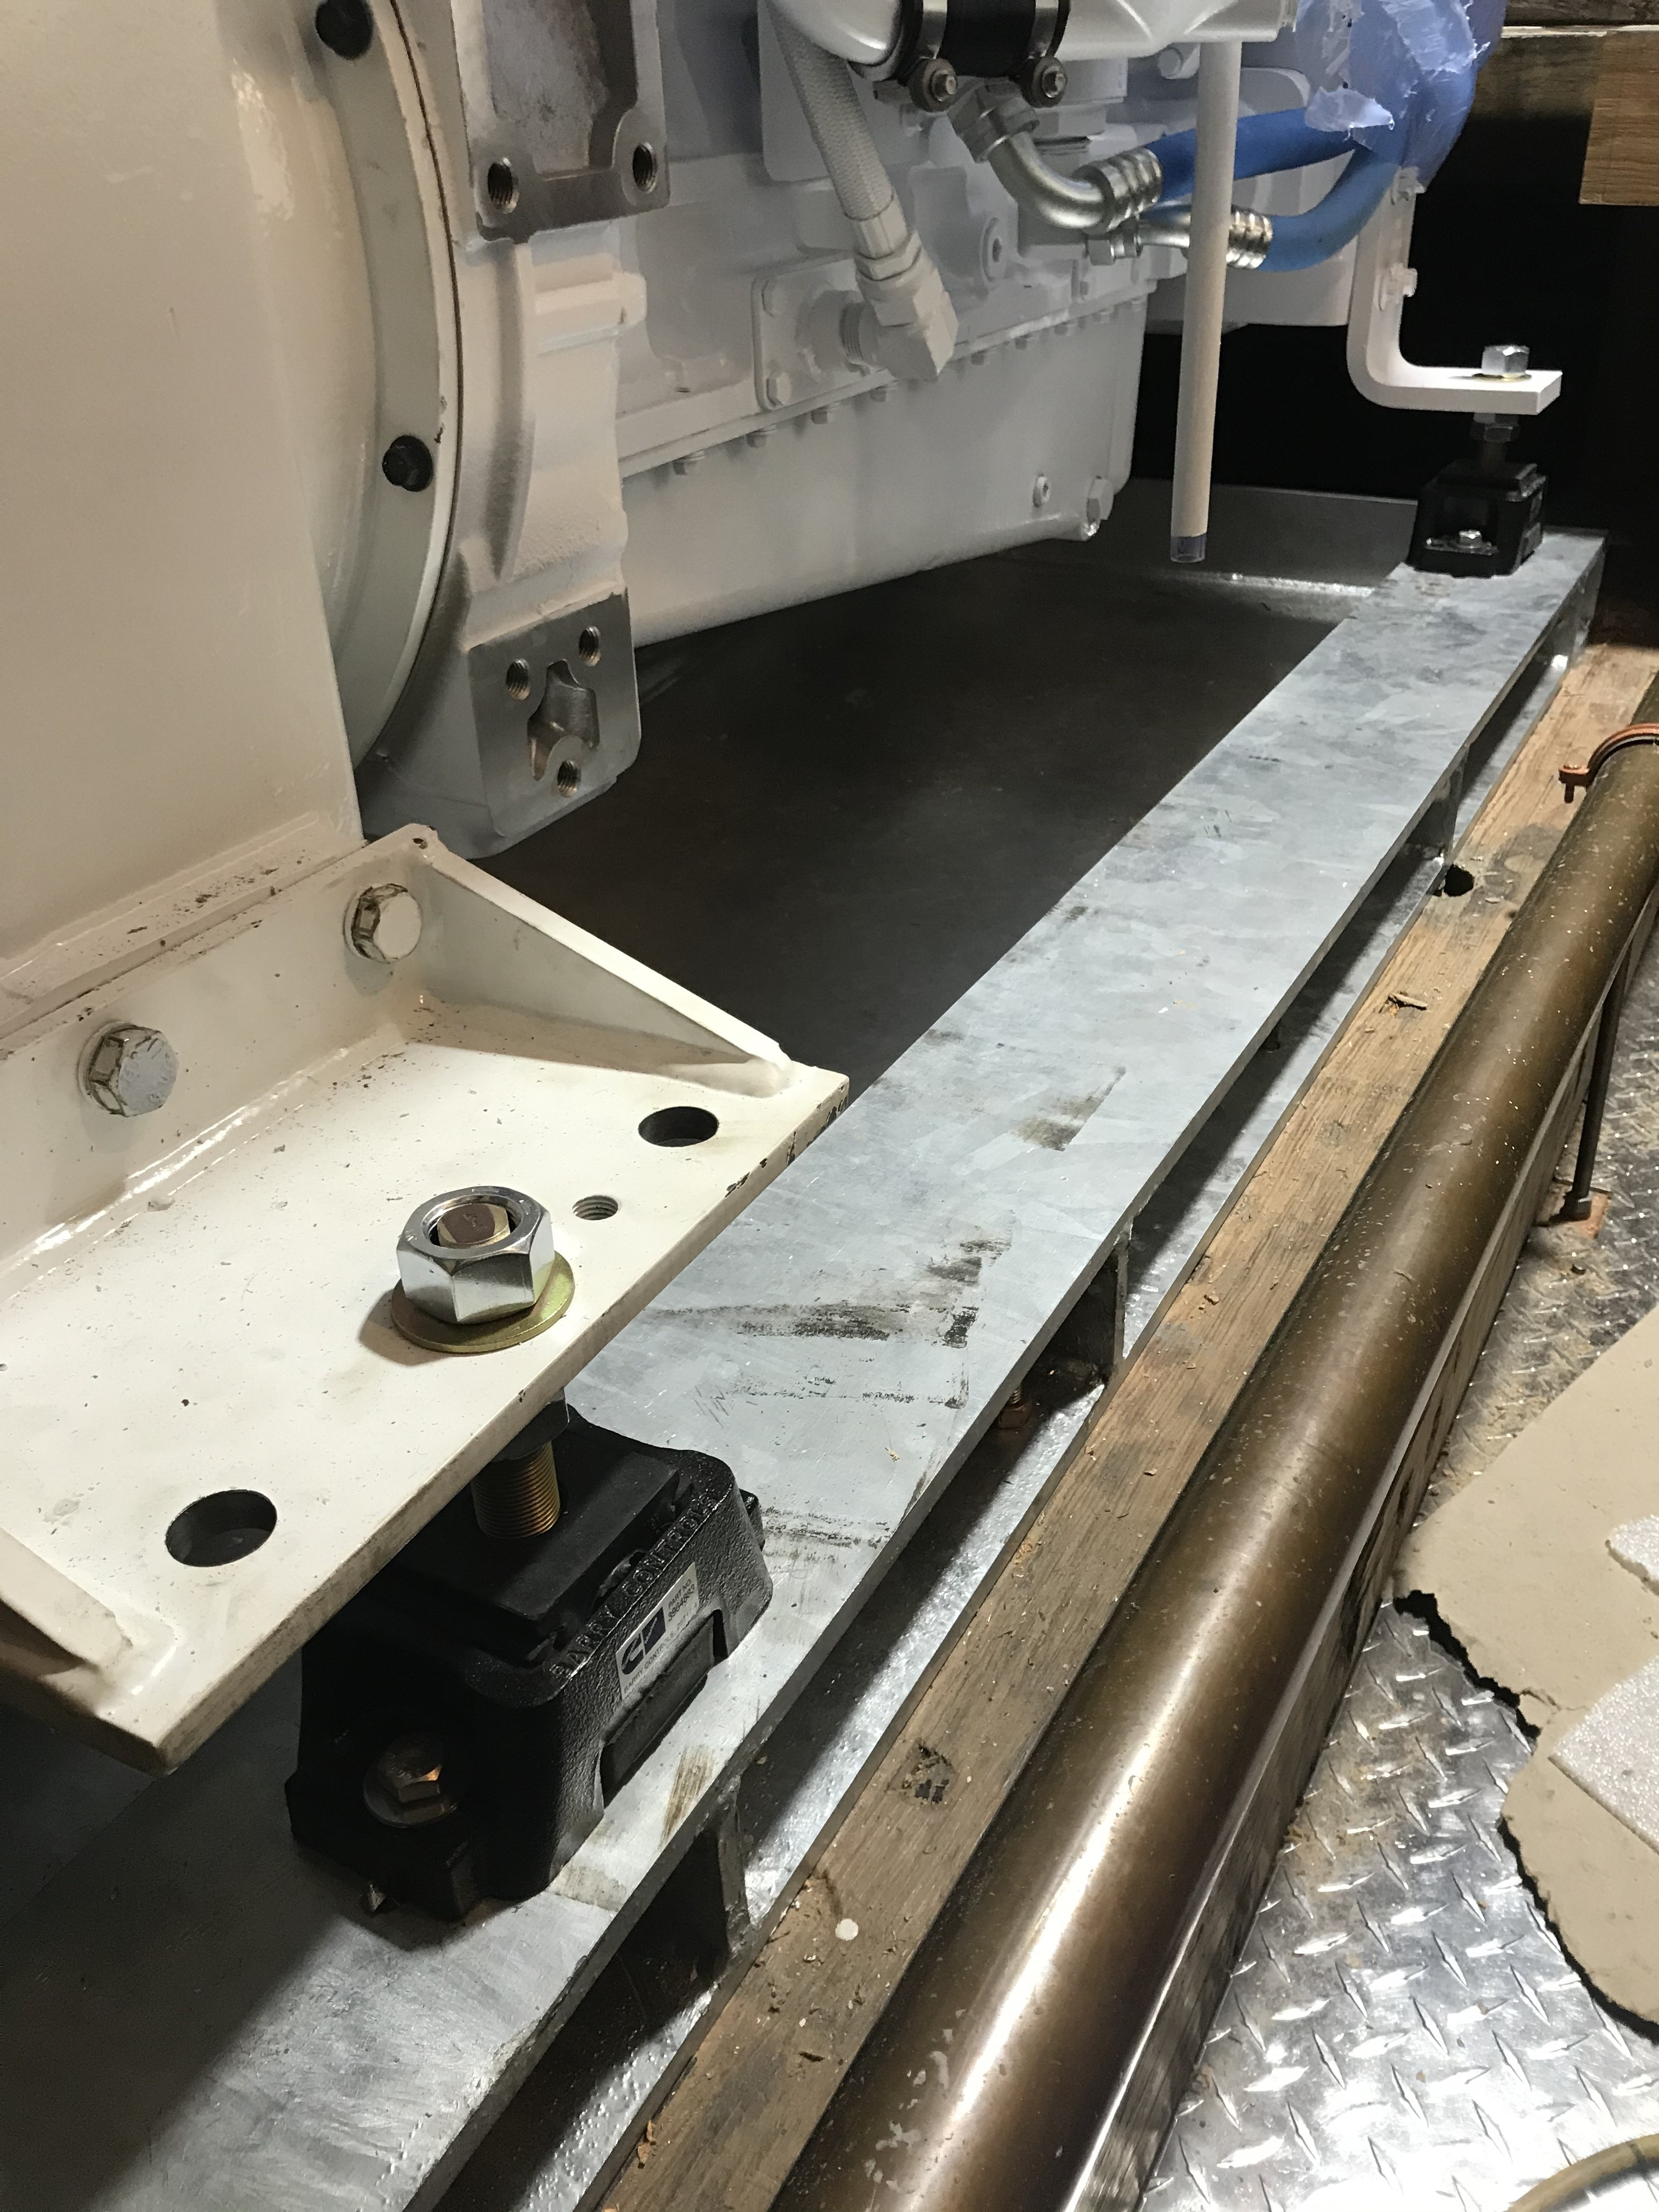 This image shows the port side detail of the custom designed engine bed that was delivered to us last week before installing the engine.  It is built with high quality steel and has been galvanized to resist corrosion.  This piece of equipment weighs more than 600lbs, and should serve its purpose well for many years into the future.